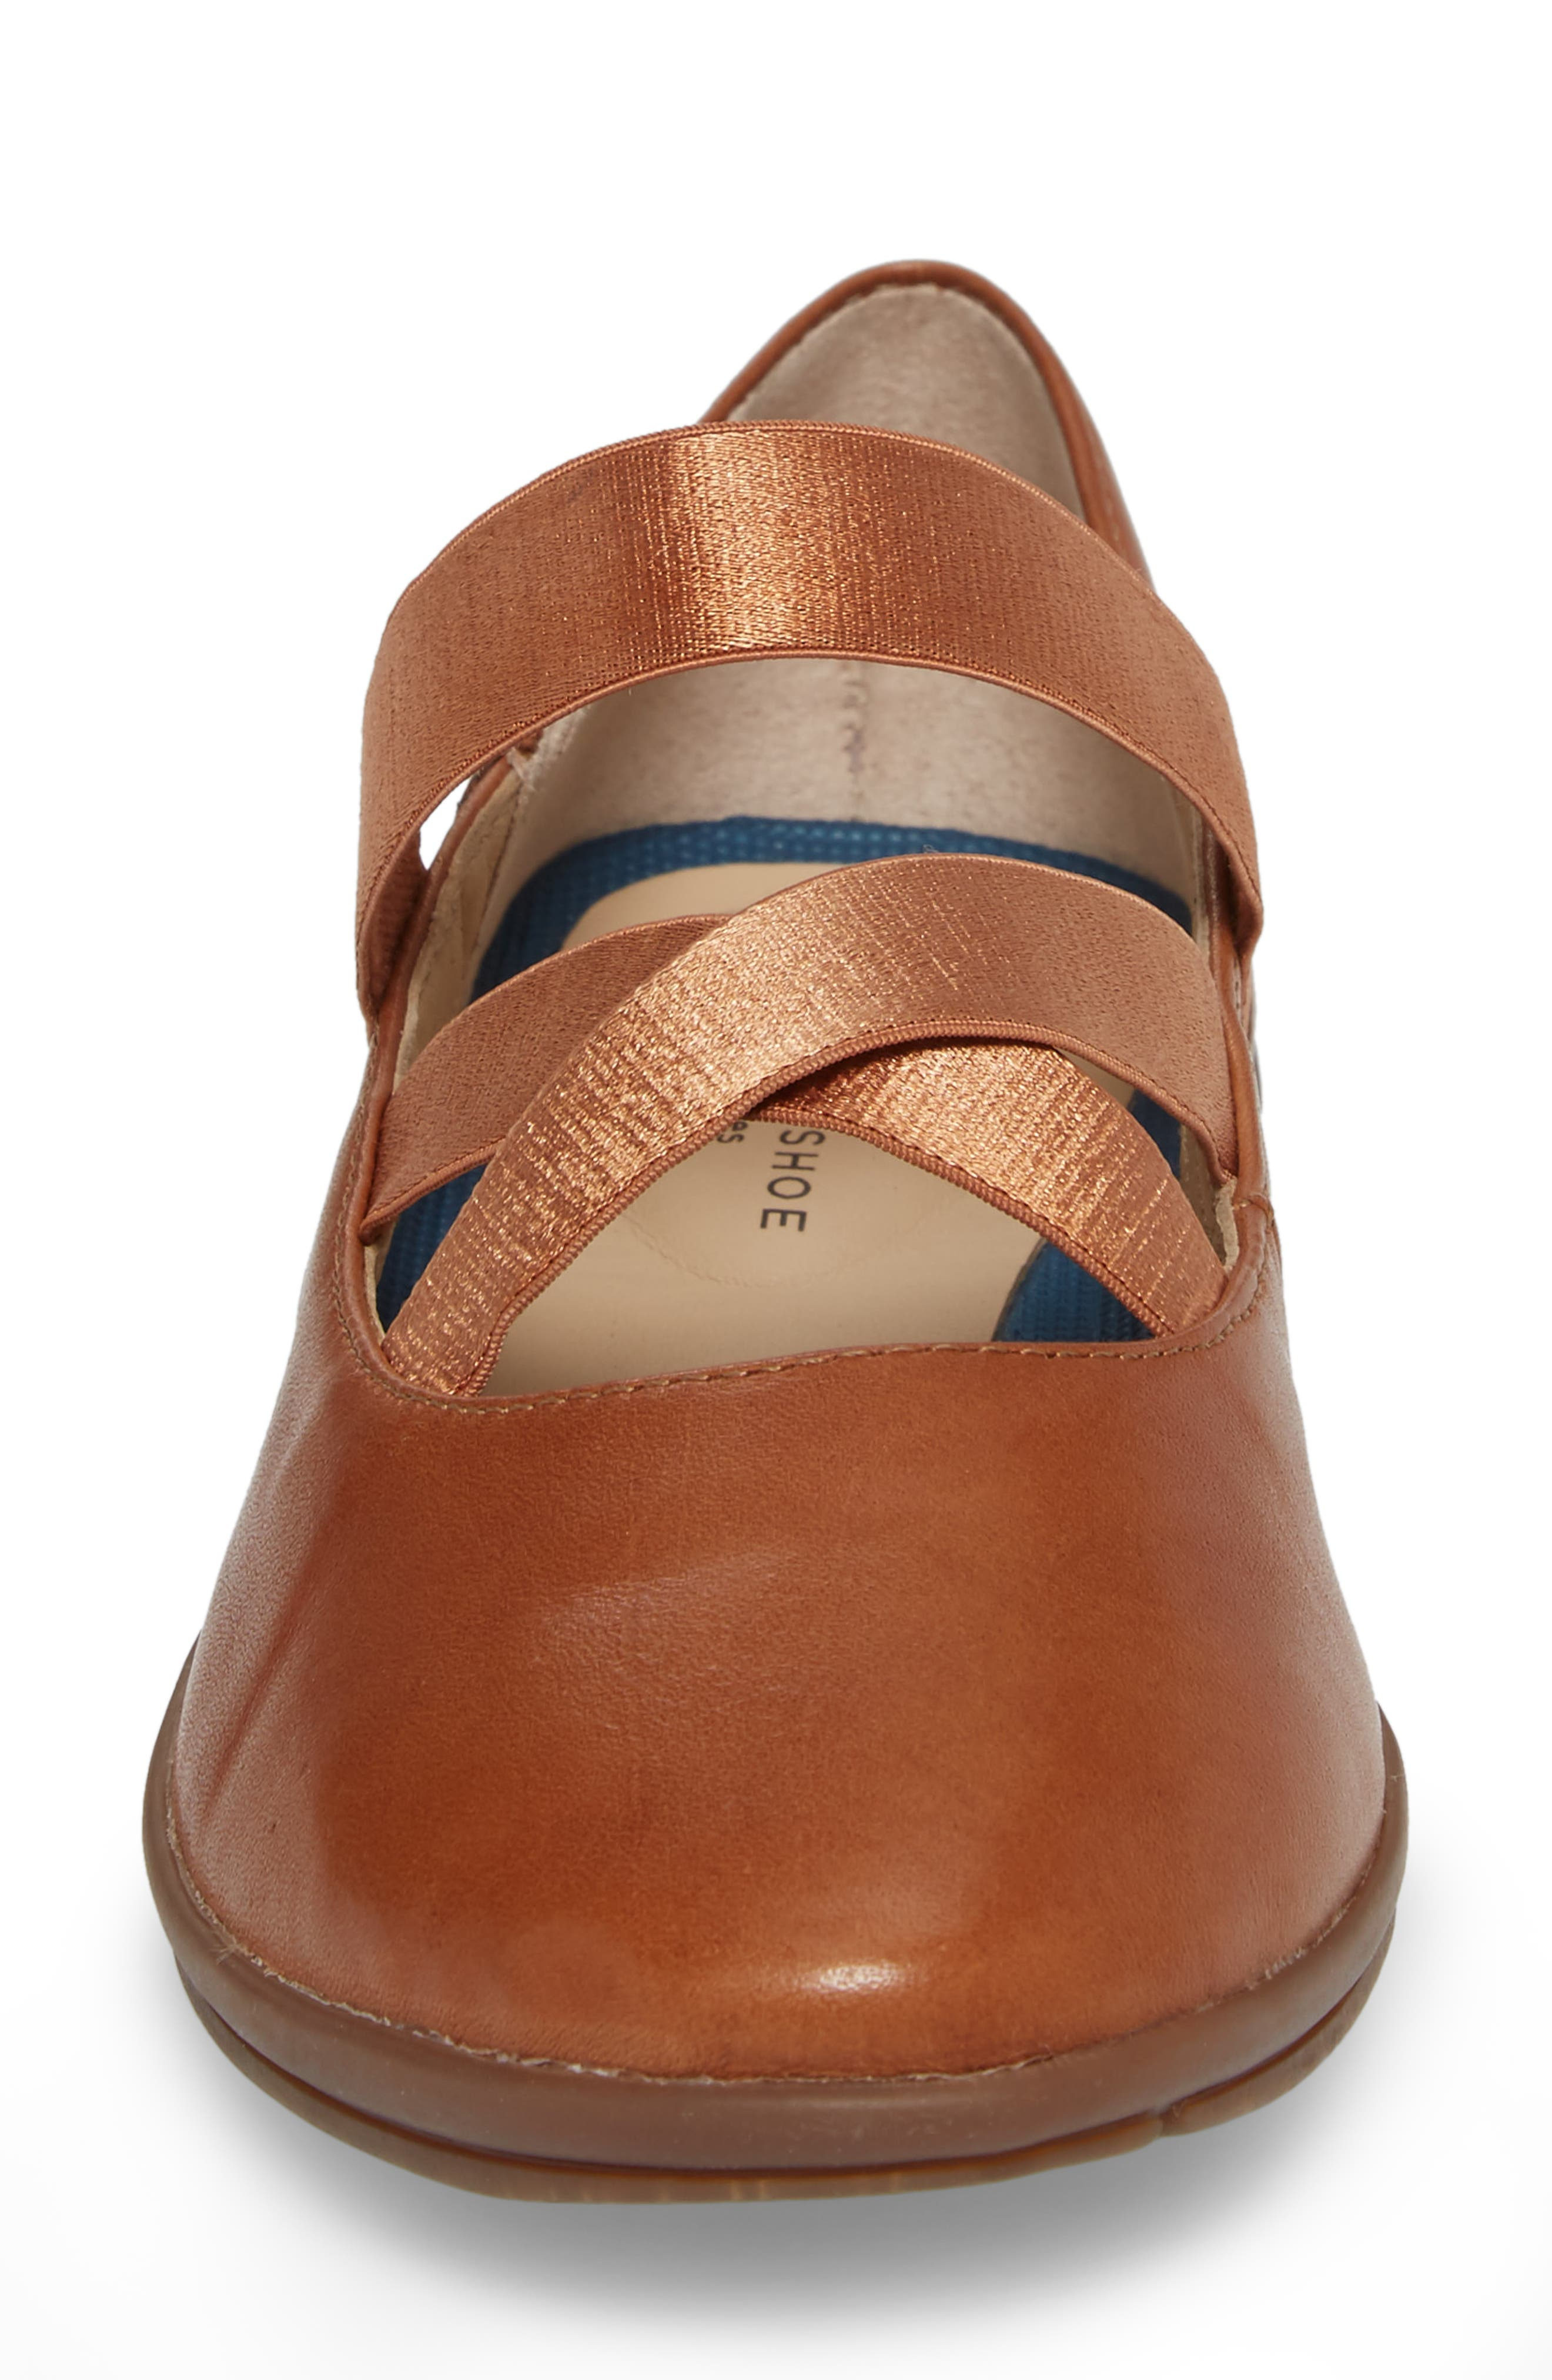 Meree Madrine Cross Strap Flat,                             Alternate thumbnail 16, color,